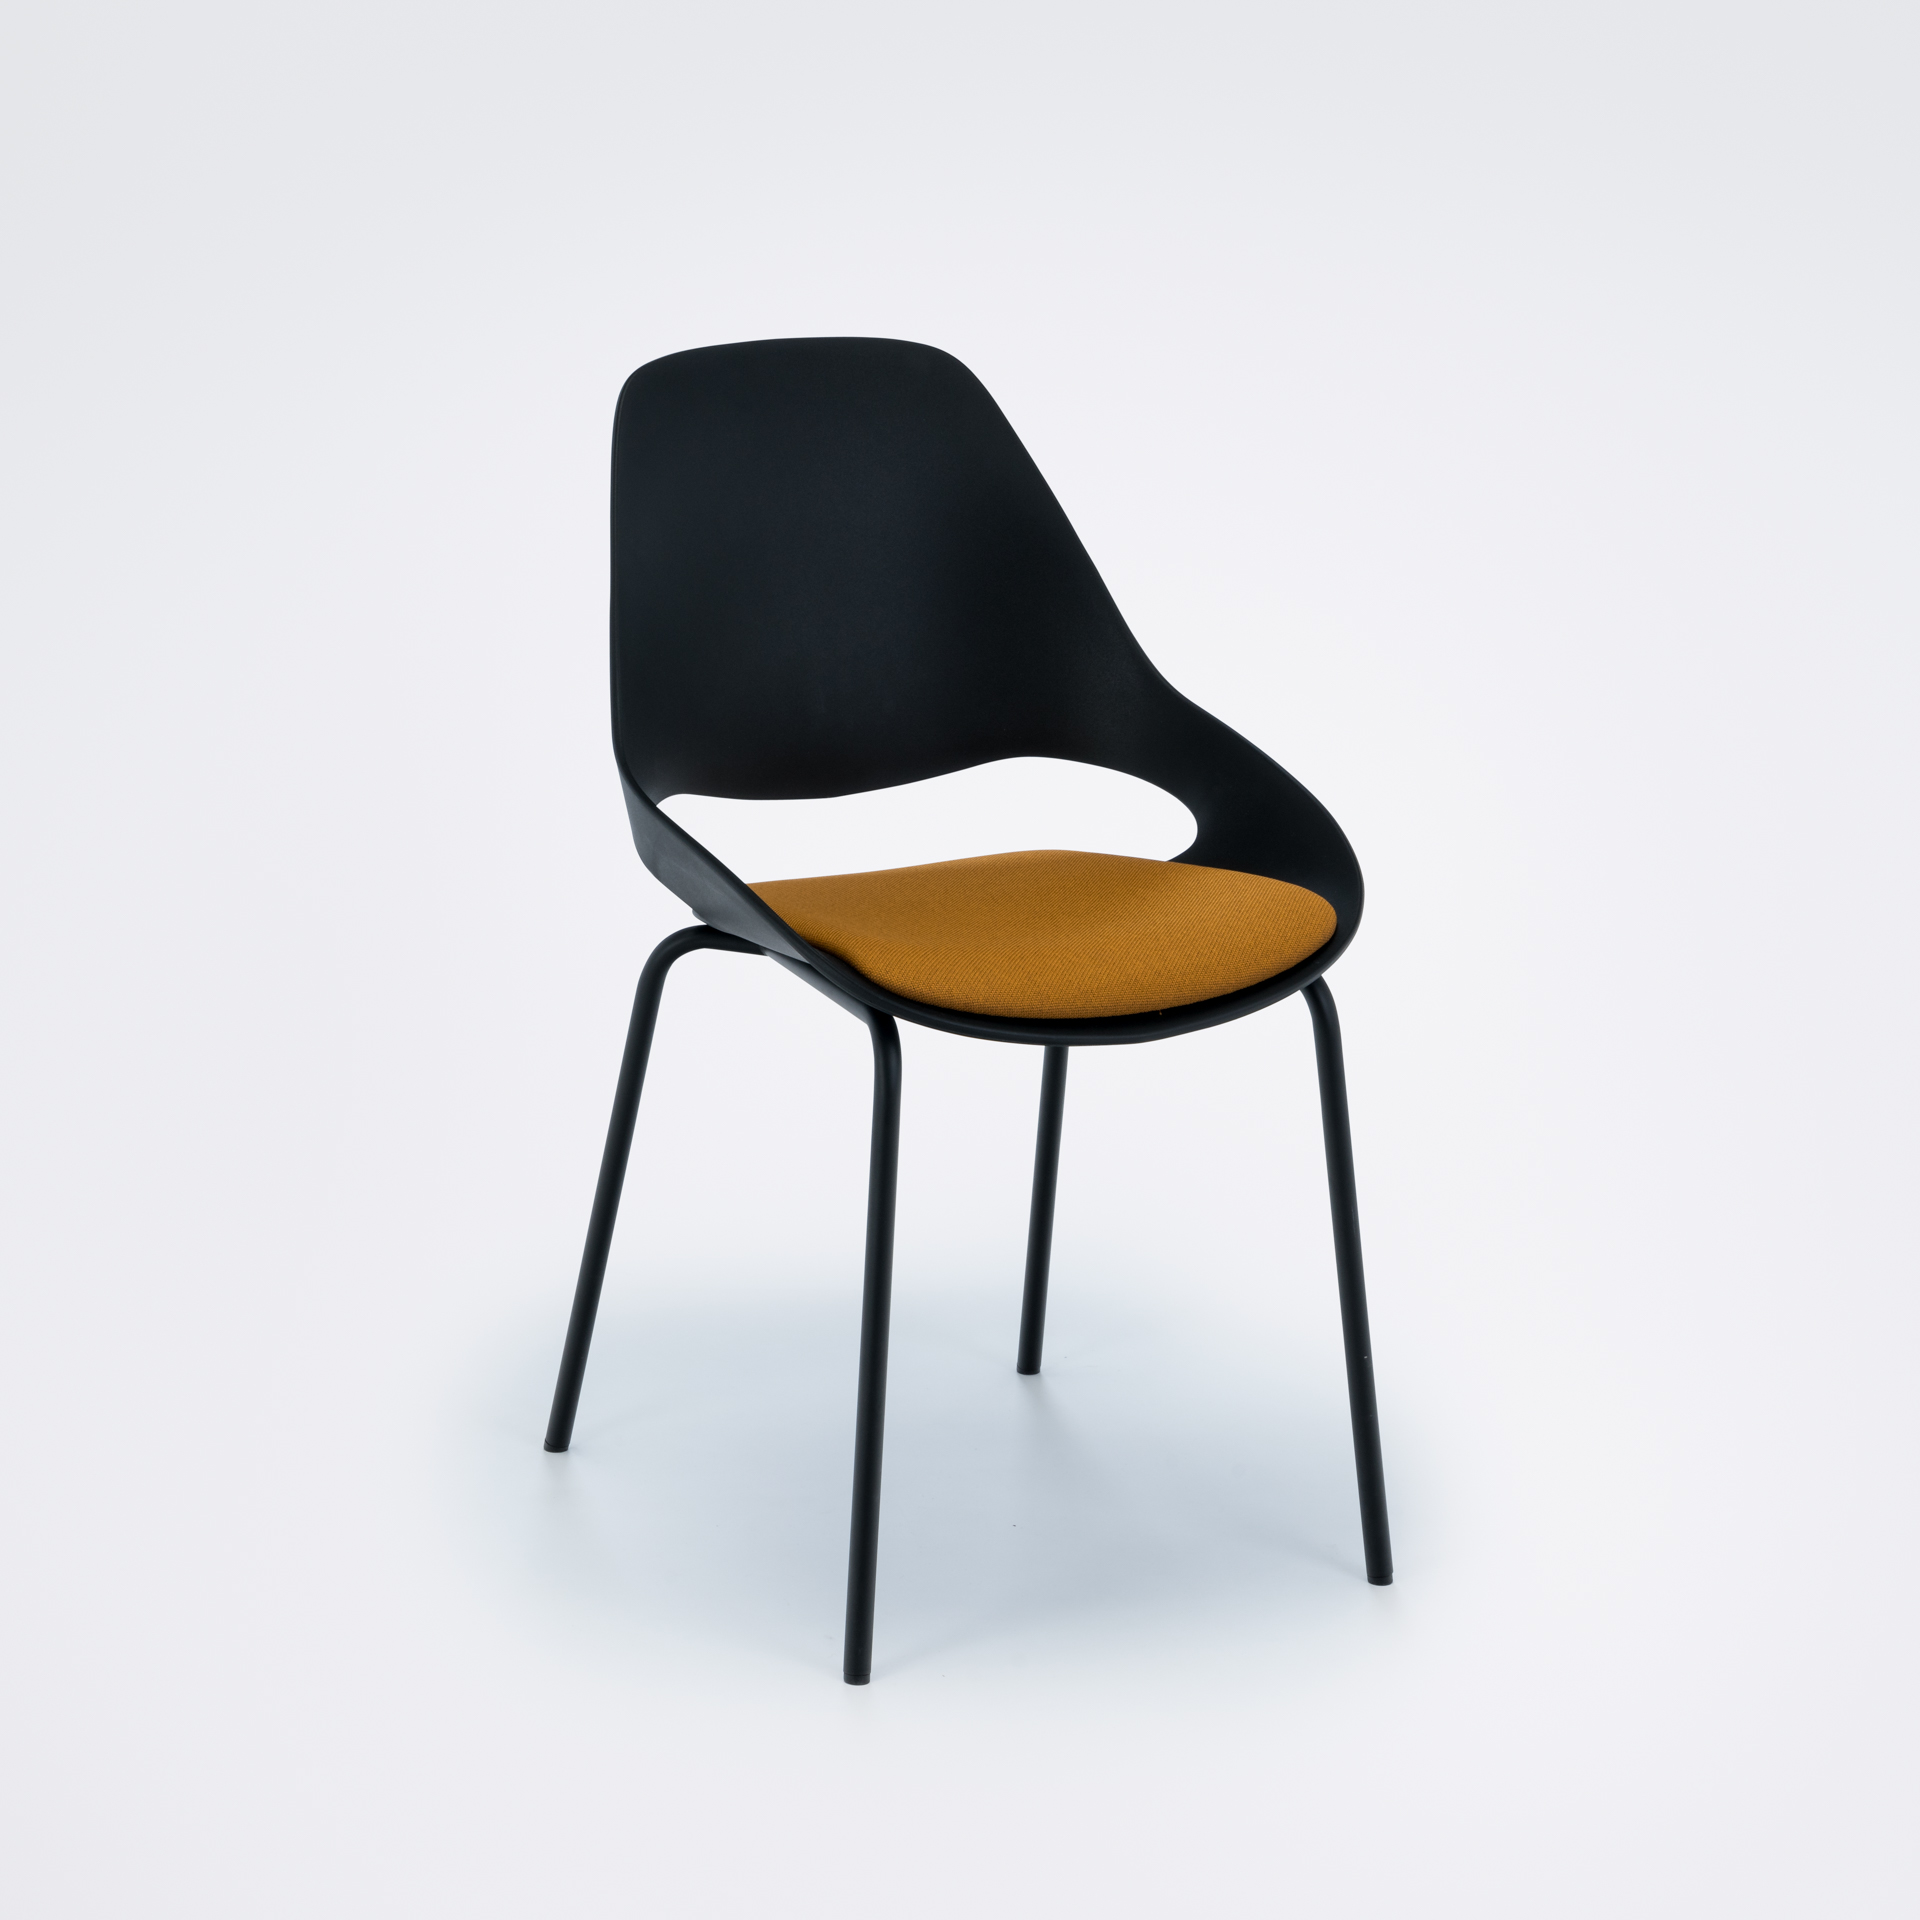 DINING CHAIR WITH PADDED SEAT // Black/amber // Black metal legs